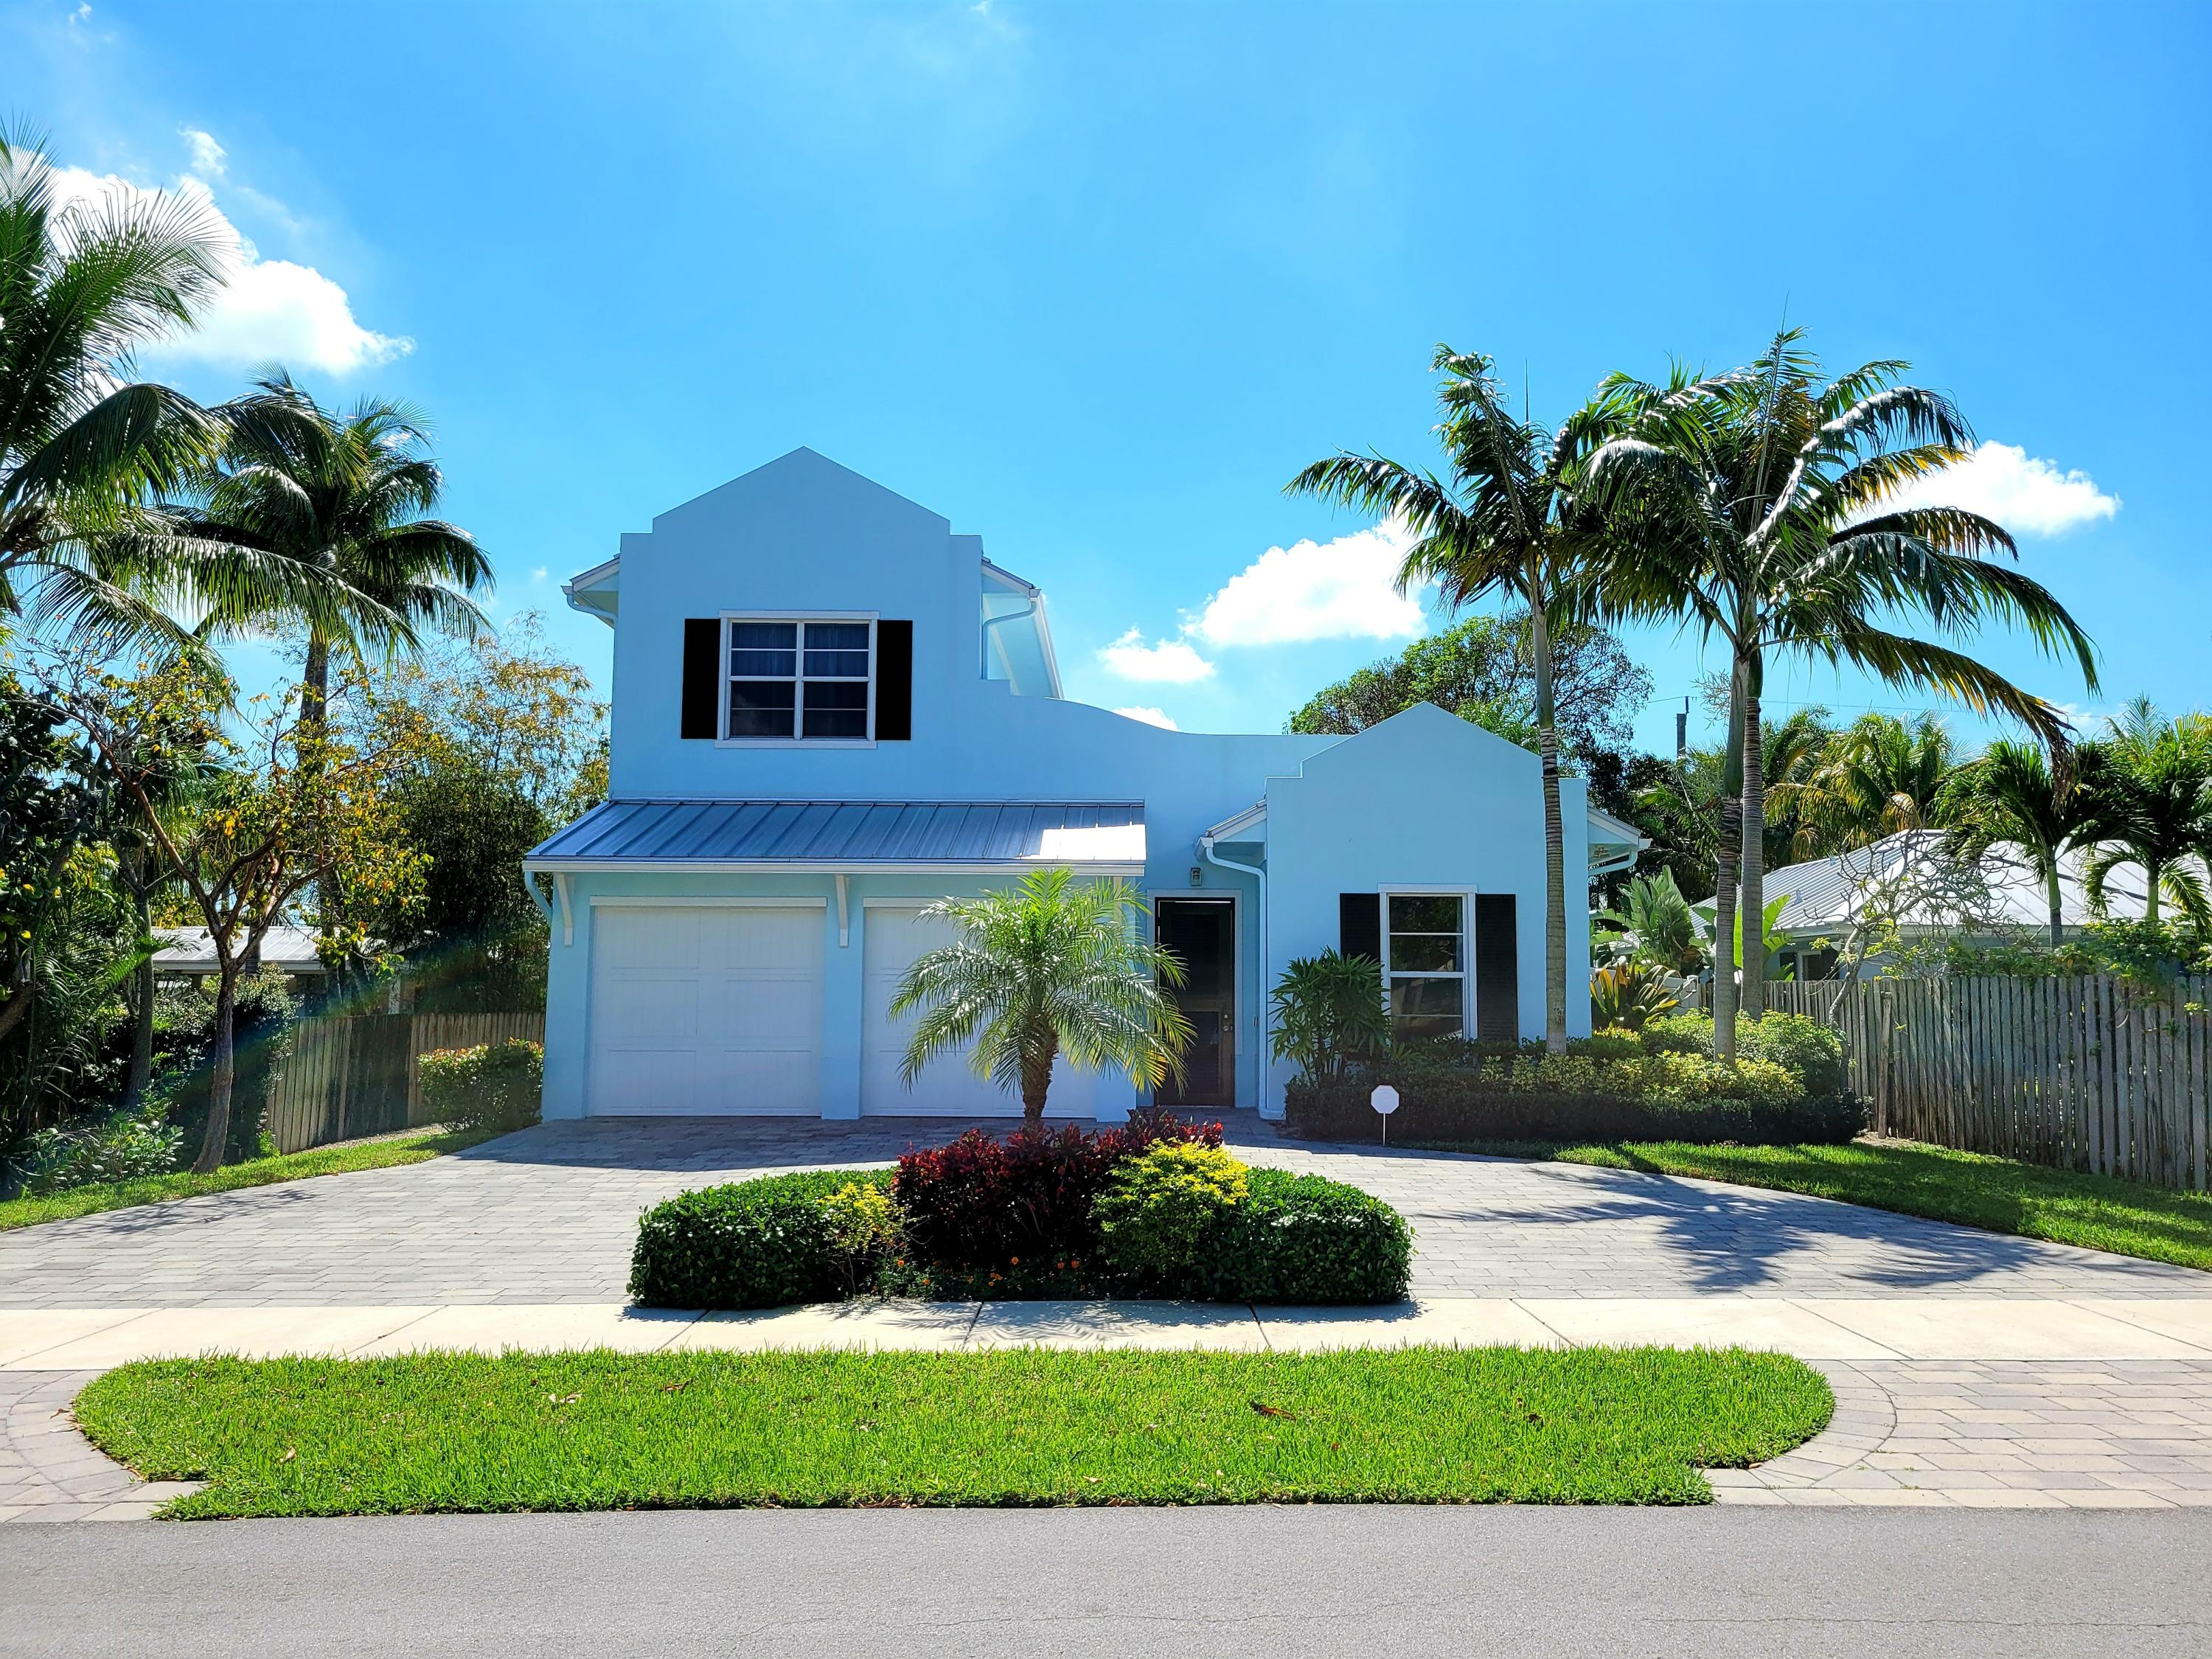 110 10th Street, Delray Beach, Florida 33444, 5 Bedrooms Bedrooms, ,4 BathroomsBathrooms,Single Family Detached,For Sale,10th,RX-10679364